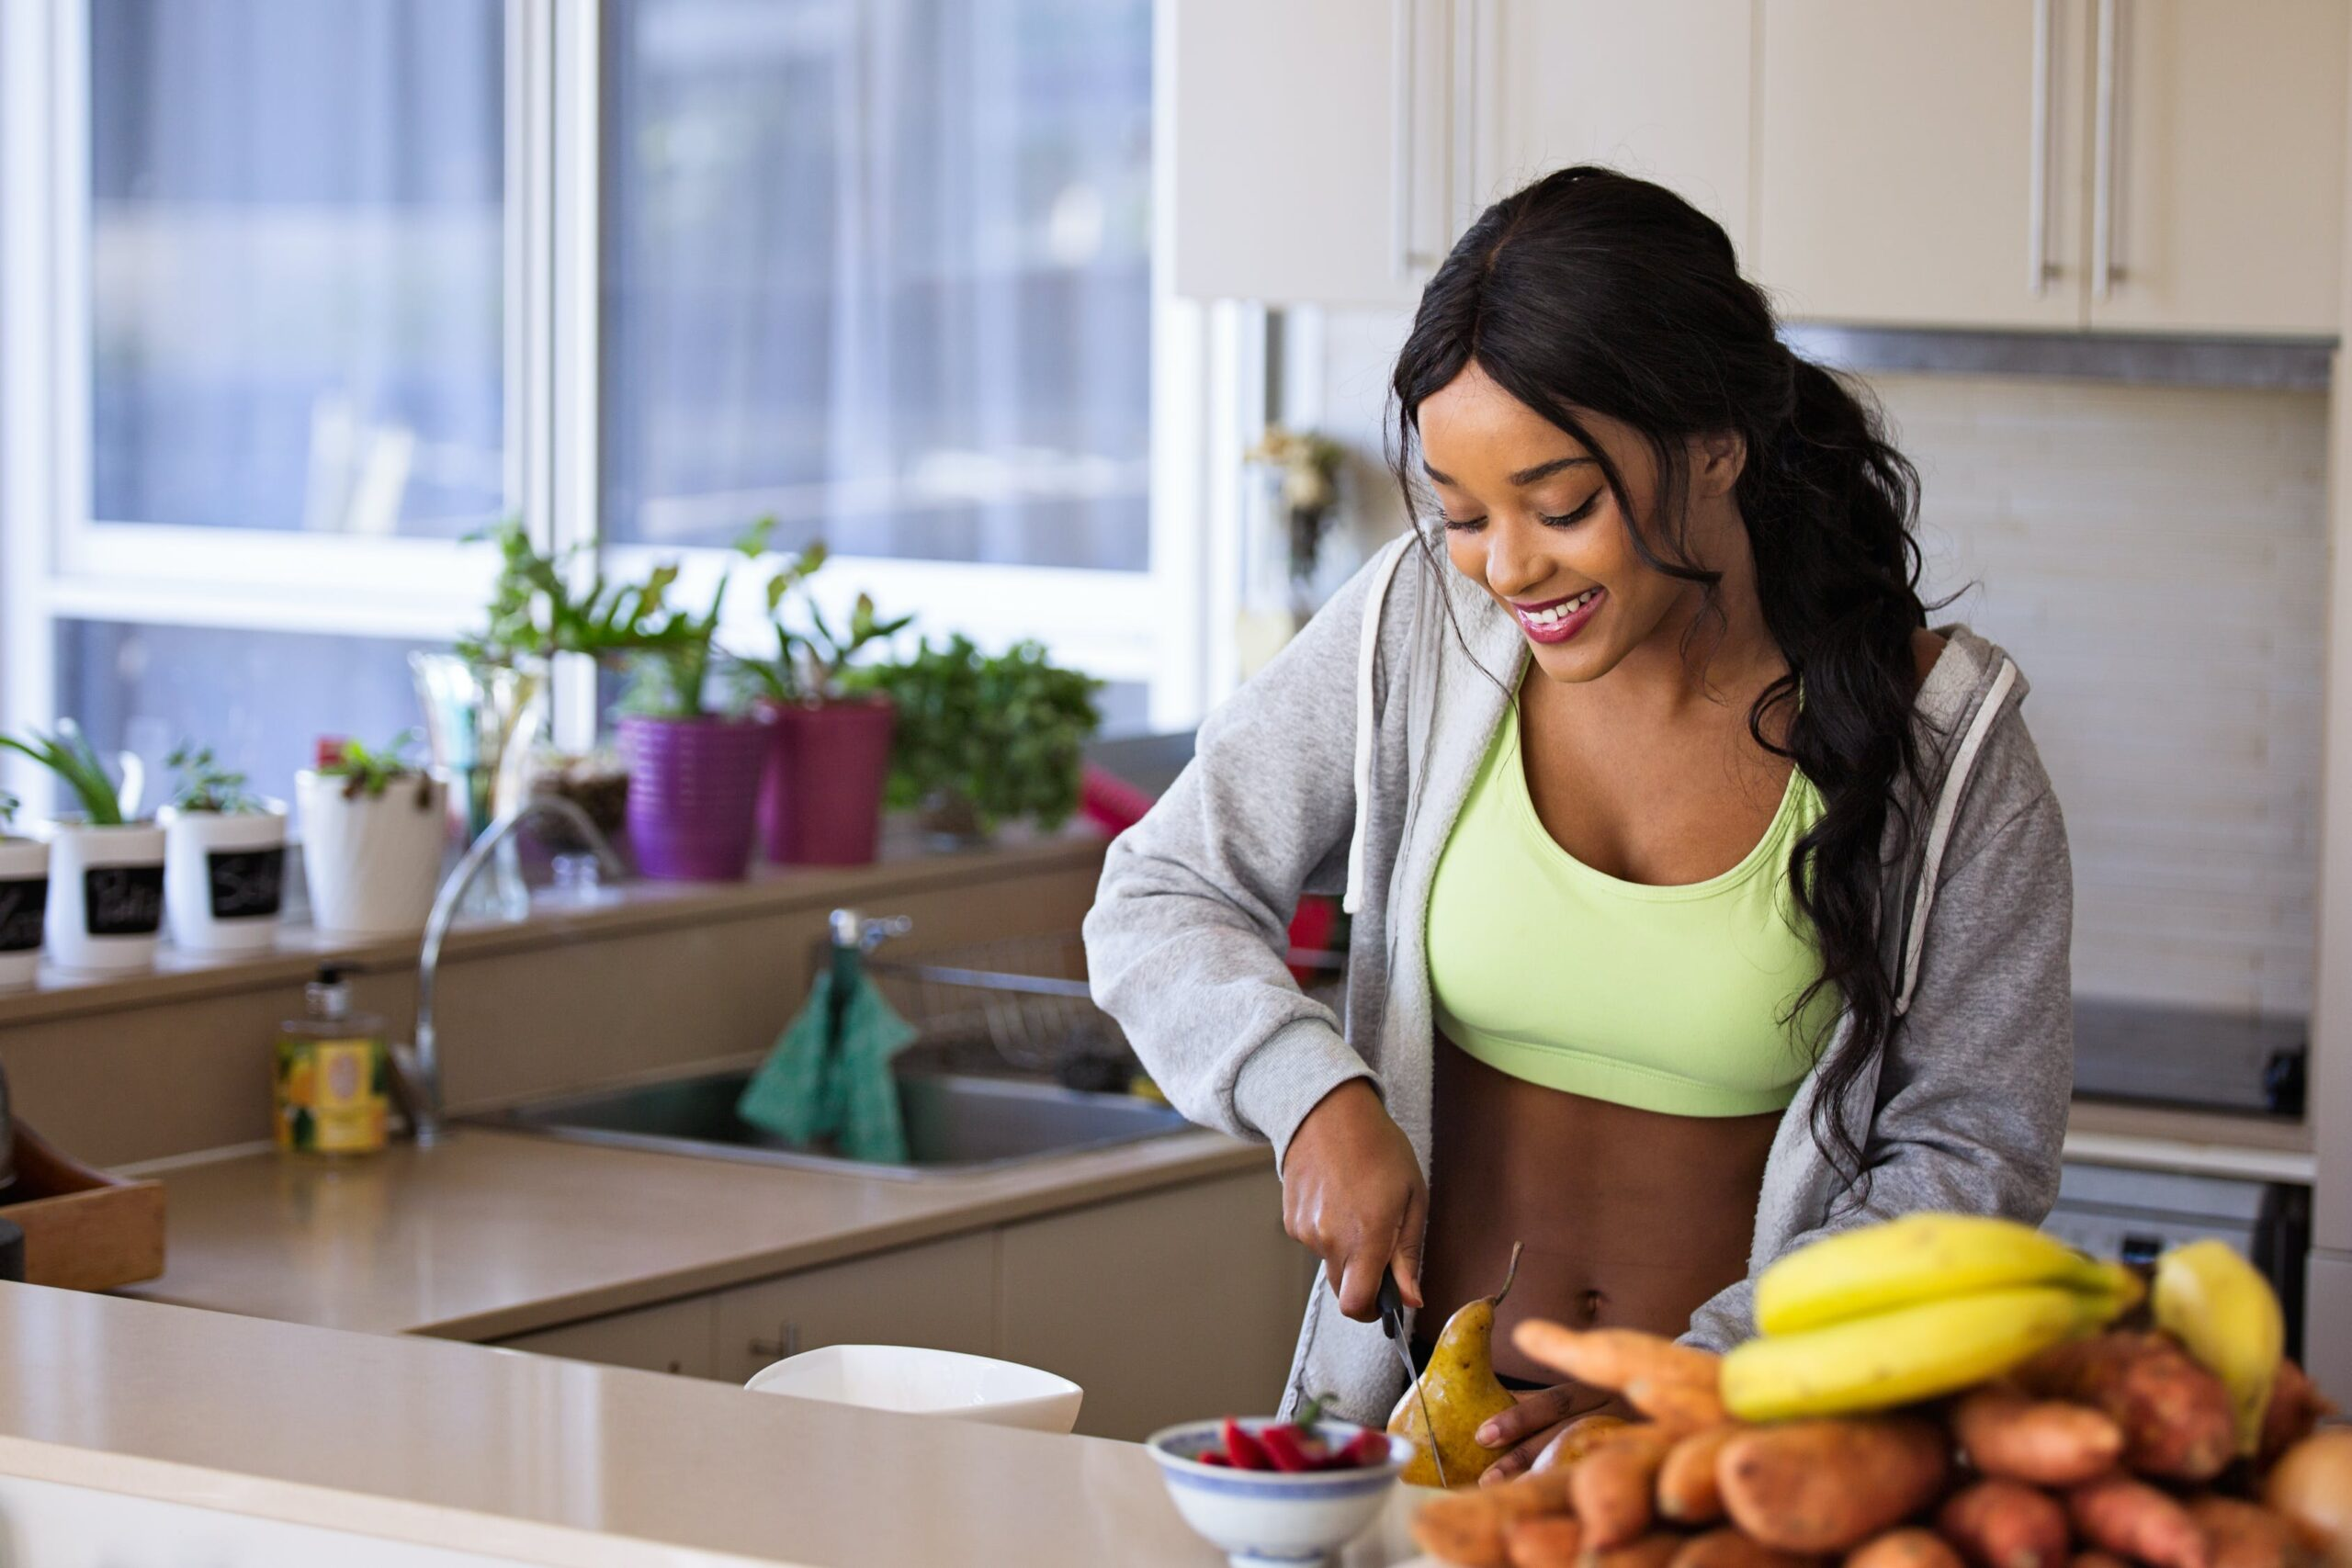 How to Fuel our Bodies for an Active Lifestyle